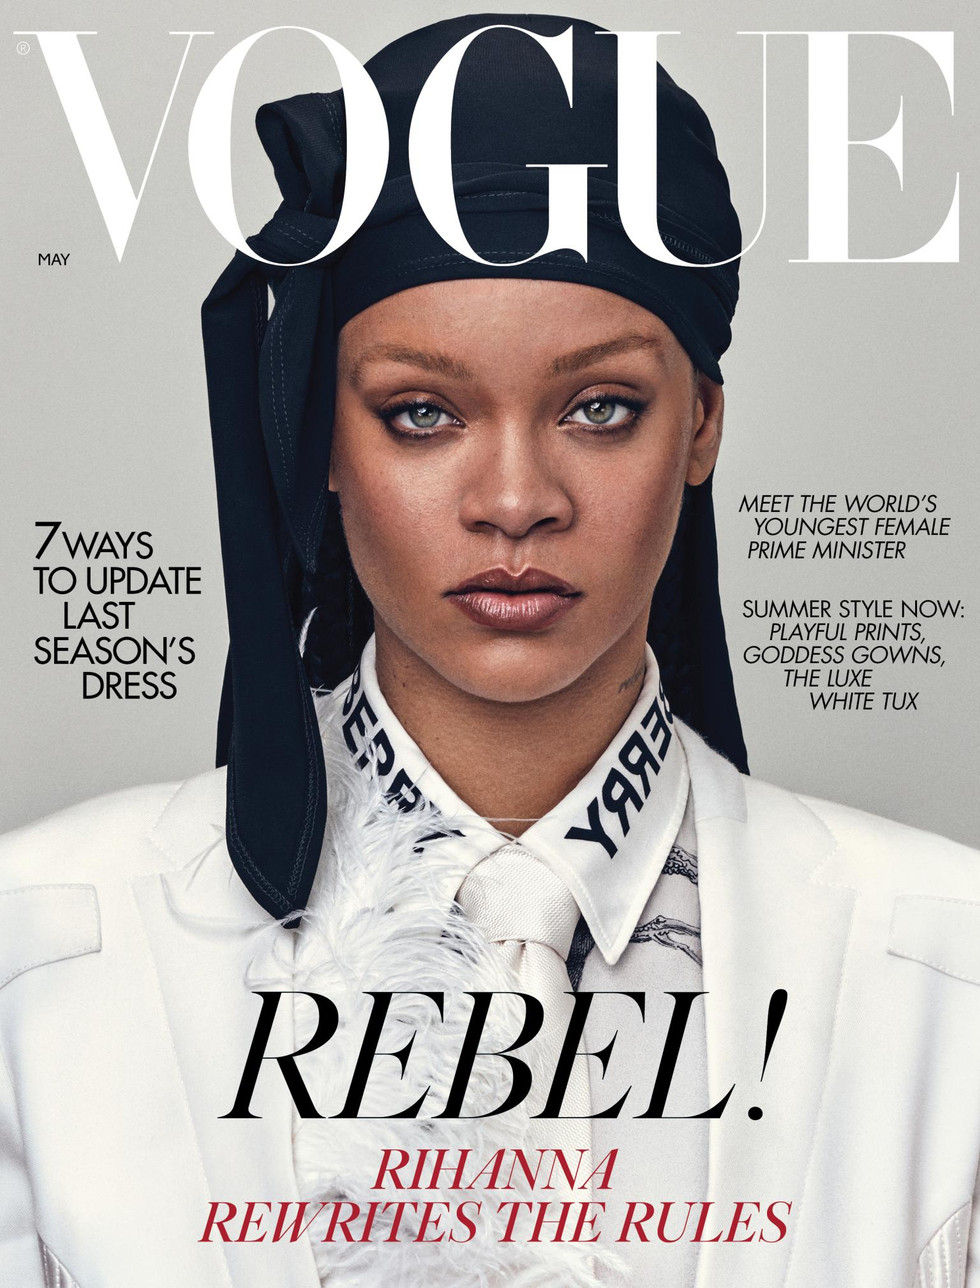 Vogue May Cover